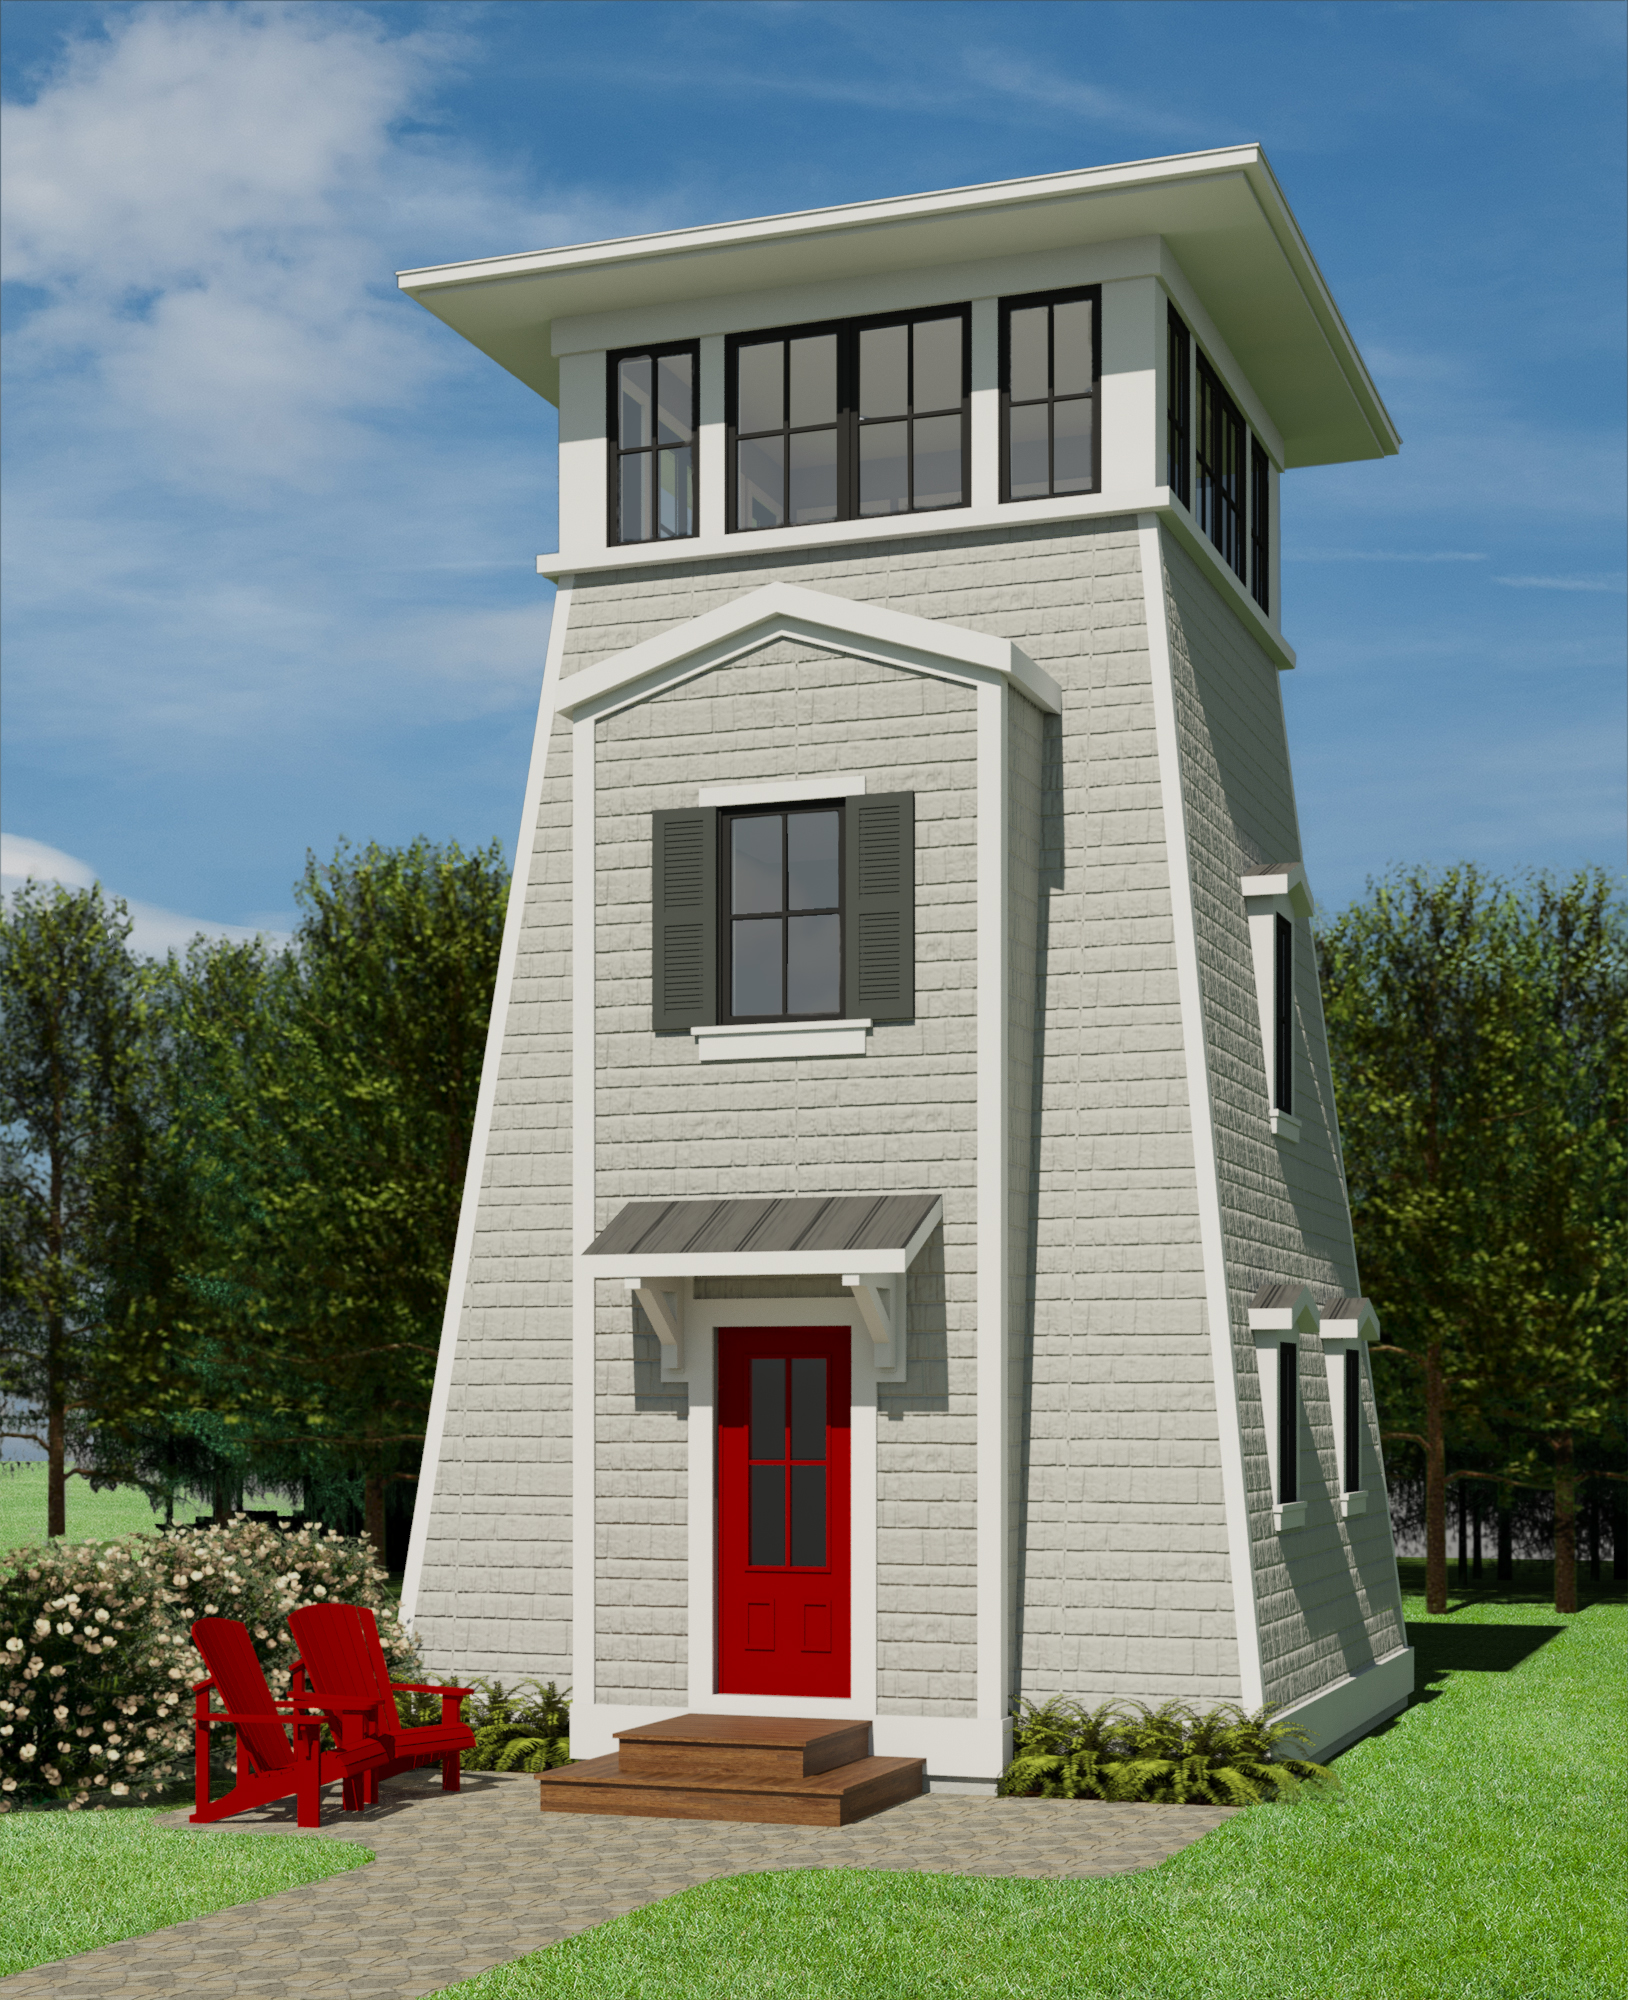 The nova scotia small home plans Tiny little house plans